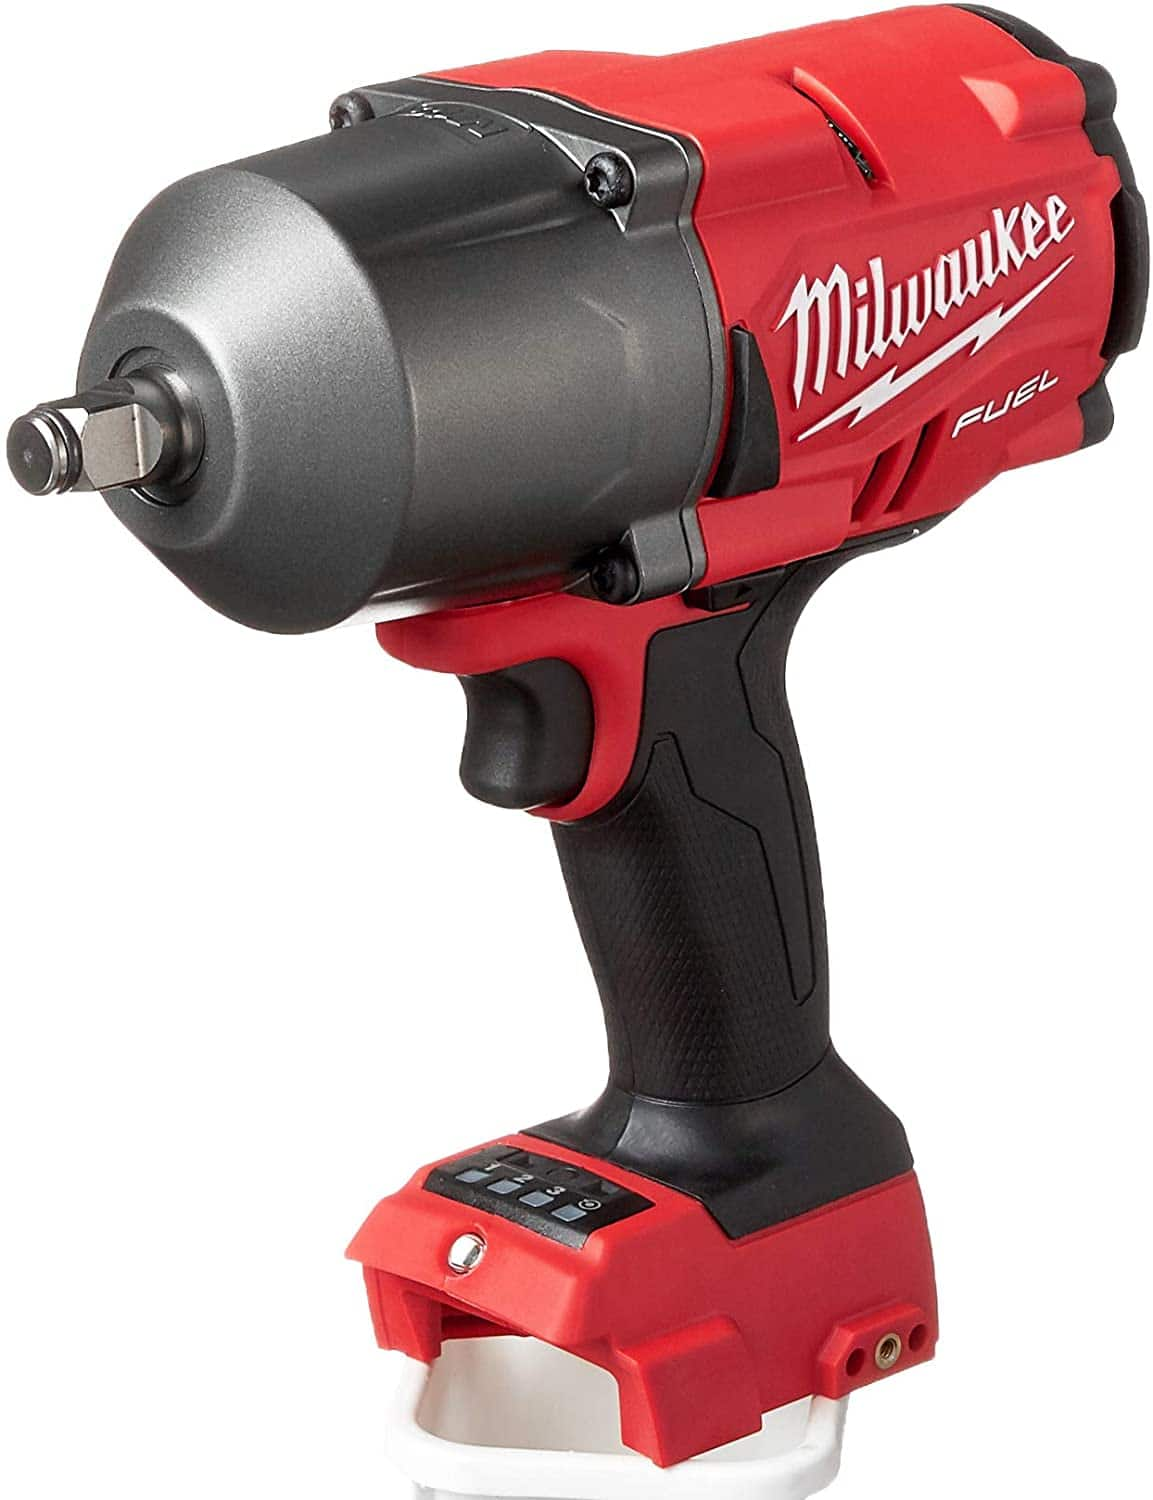 Milwaukee 2767-20 M18 Fuel High Torque 1/2-Inch Impact Wrench with Friction Ring $203.99 at Industrial Tools via Amazon